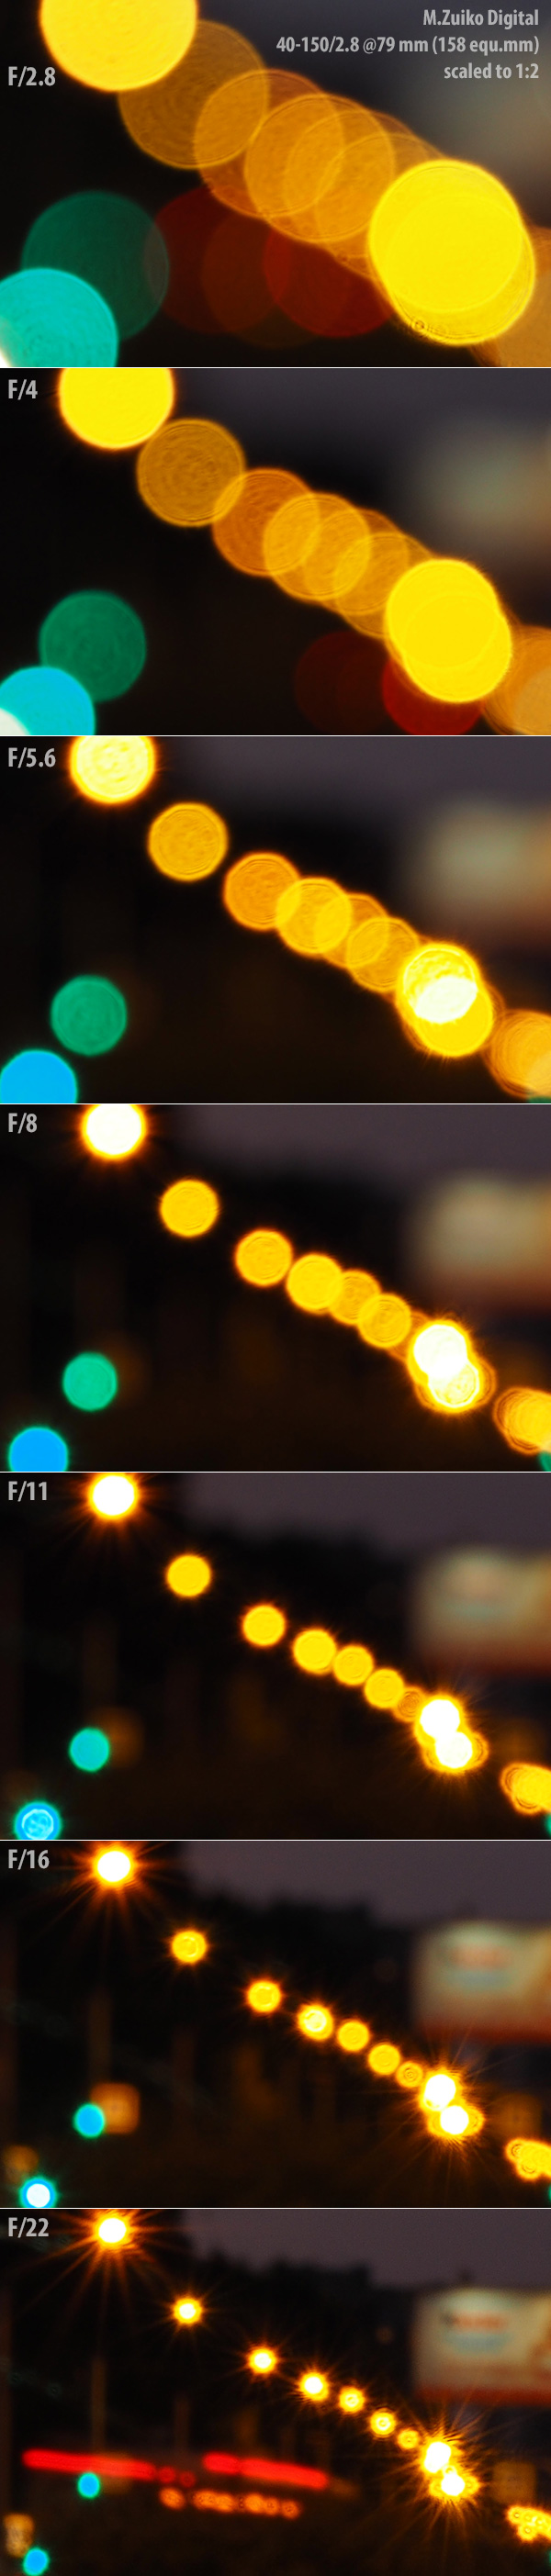 MZD-40-150-bokeh-1-night-600x2806